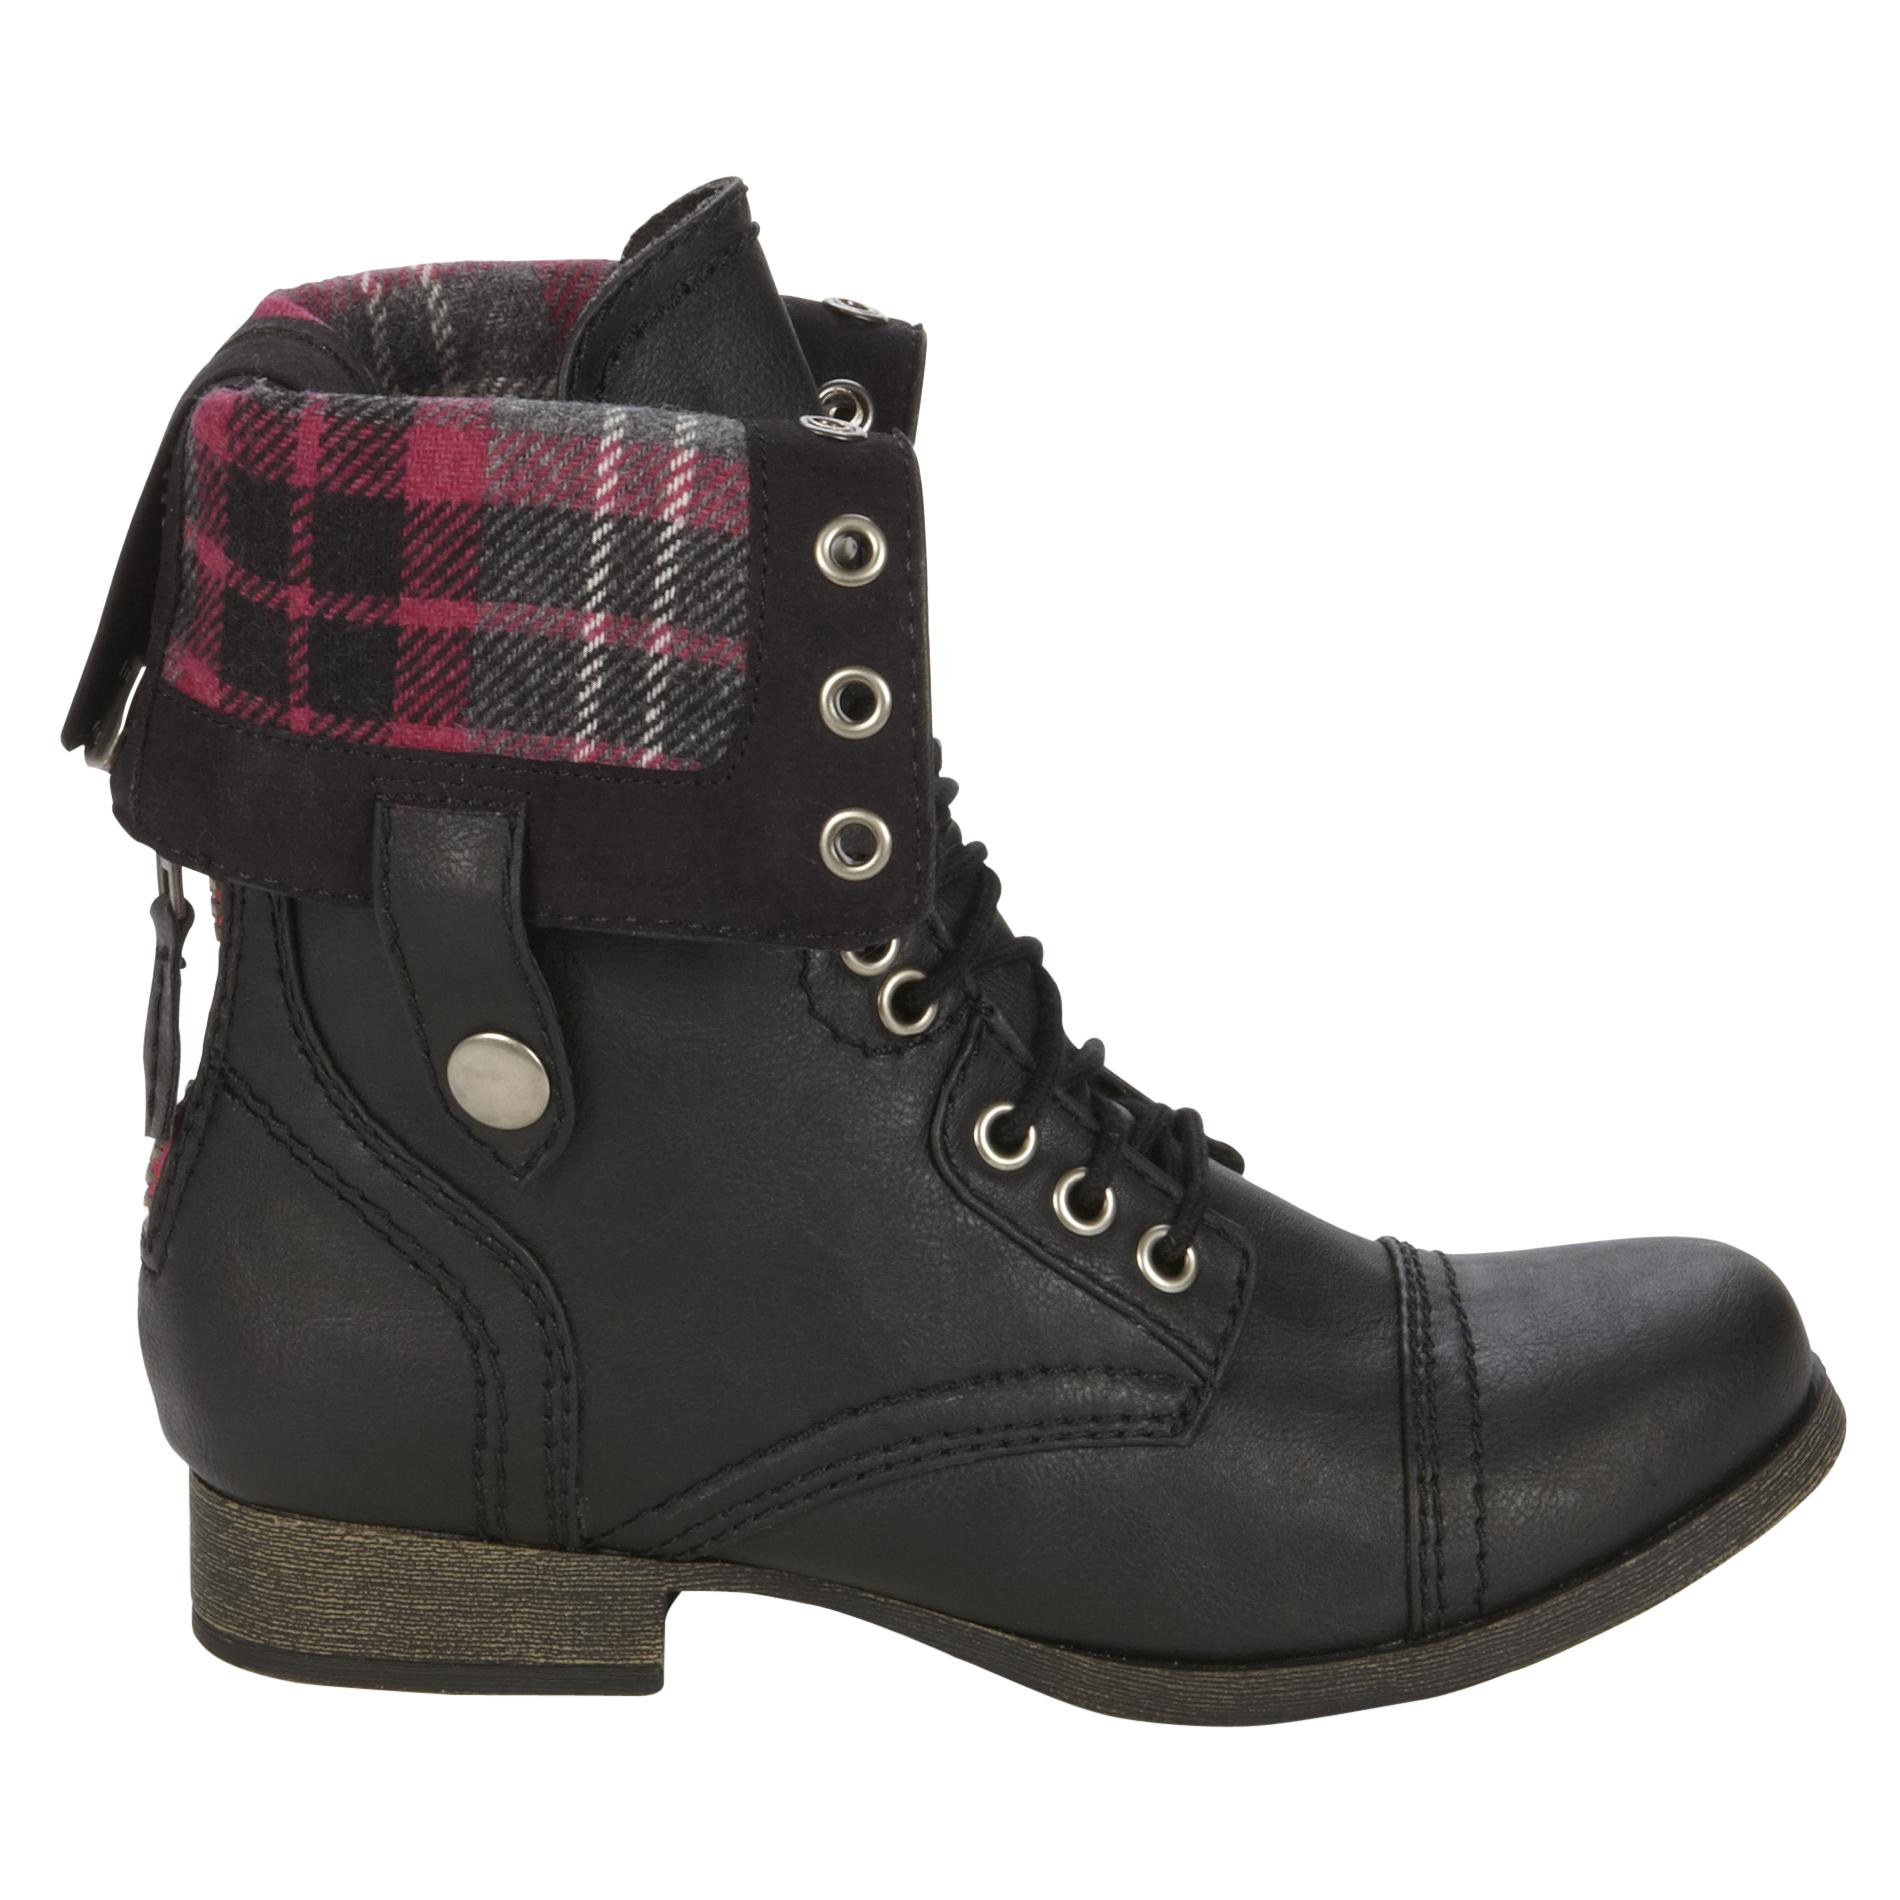 In addition, we stock military boots in styles like black GI jungle boots, waterproof black military boots, black safety and steel toe boots, black tactical boots, and black military combat boots. Discover why Military Uniform Supply is the trusted supplier for black military boots and black leather military boots.